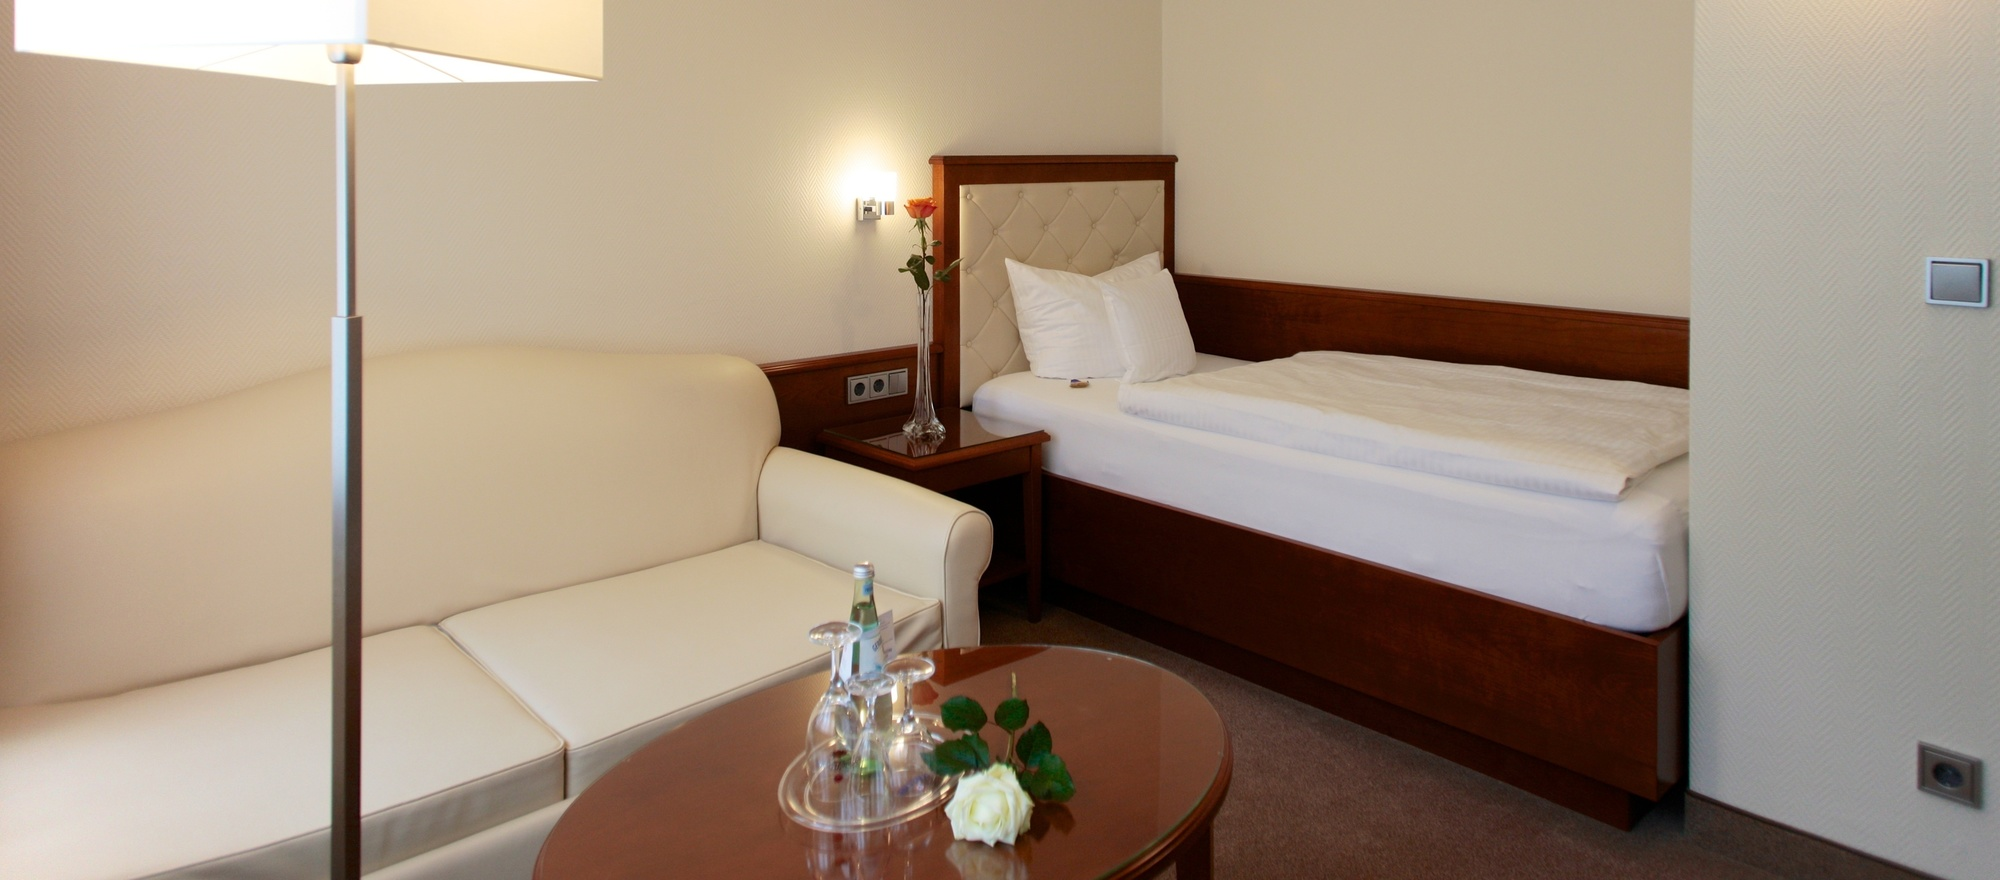 Combi single room: Double rom with two seperate sleeping rooms in the Ringhotel Faehrhaus in Bad Bevensen, 4-stars hotel in the Luneburg Heath region